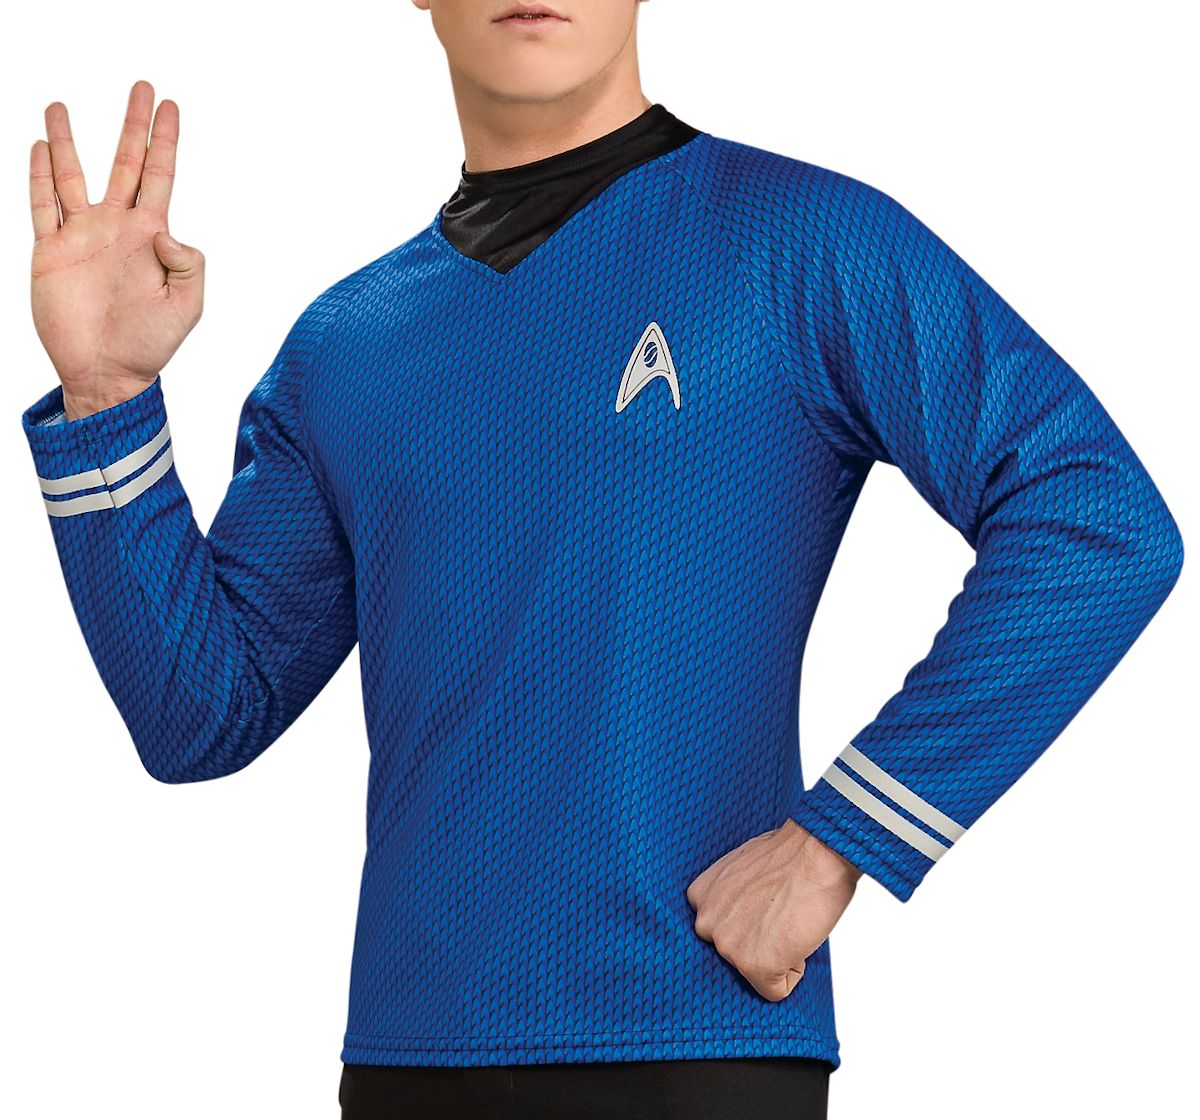 Star trek into darknessdvd images aol image search results show more images buycottarizona